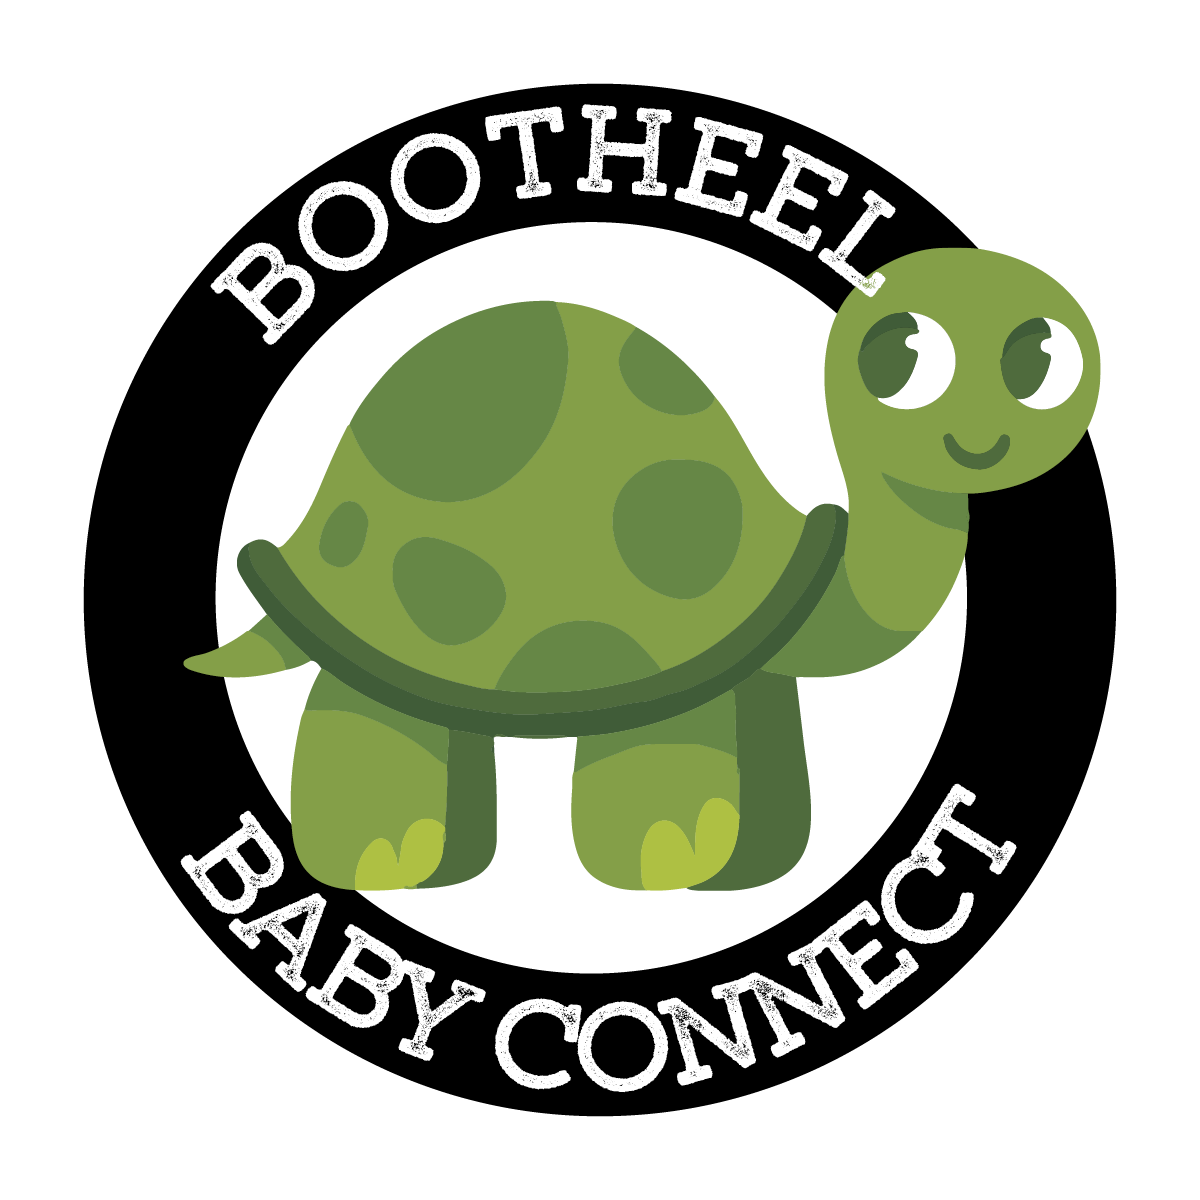 ParentLink, Bootheel Baby Connect